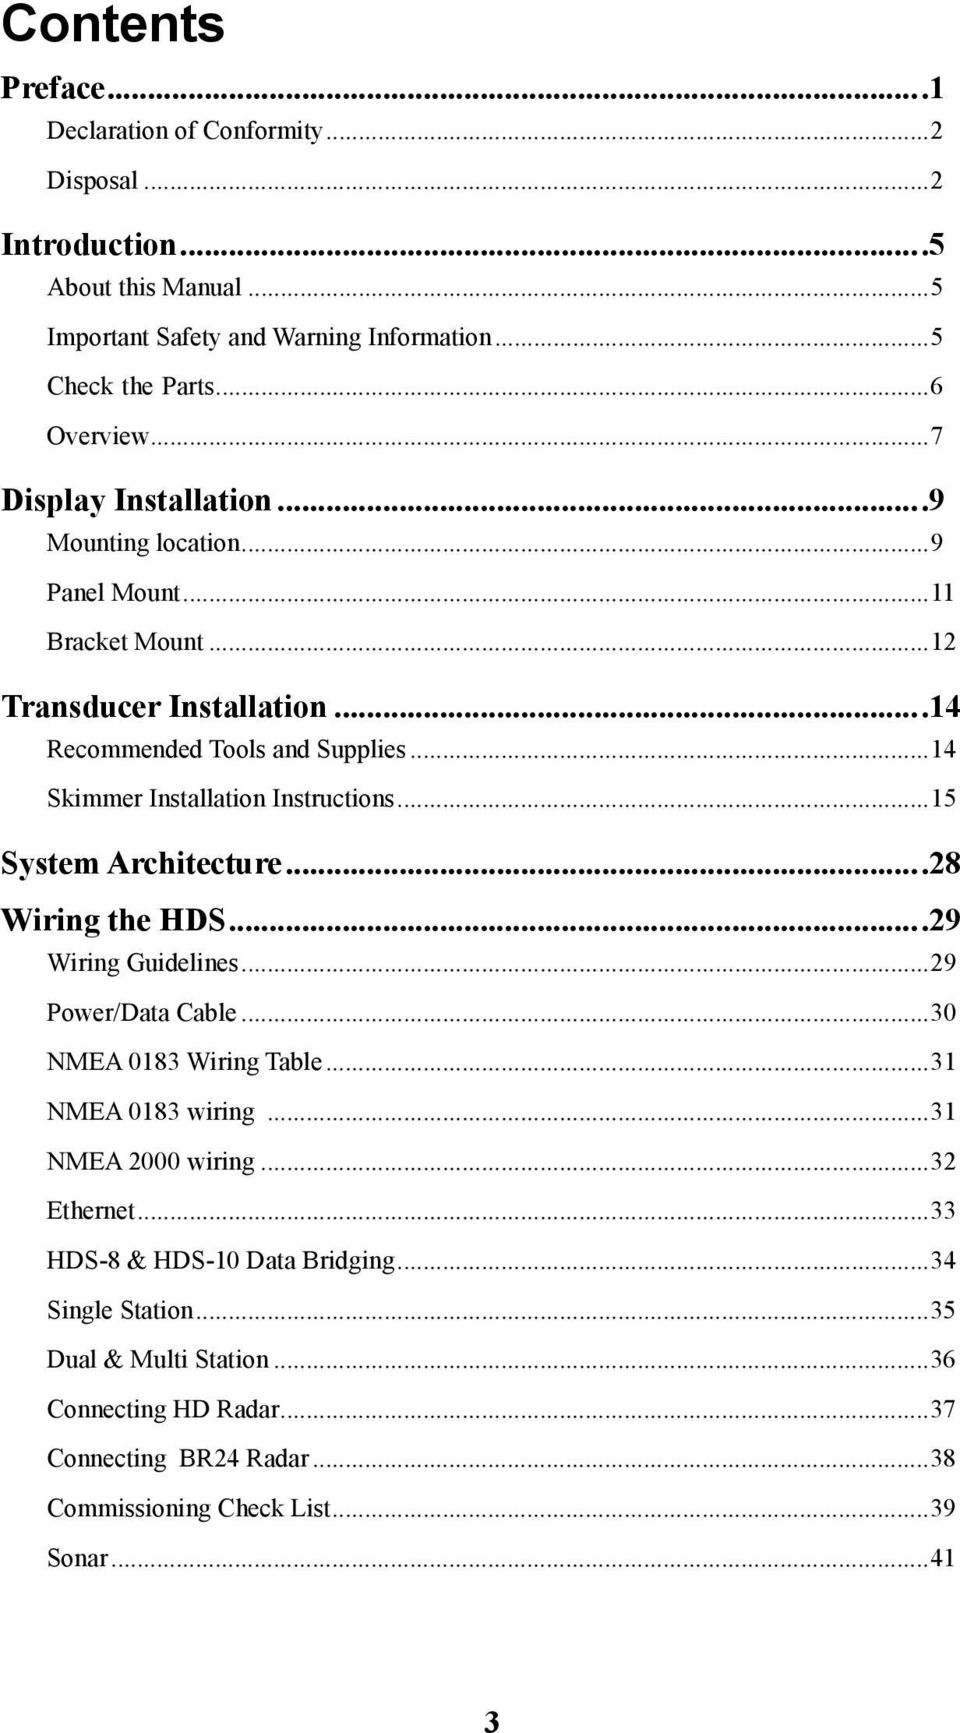 Hds Series Installation Manual Pdf Rj45 Wall Jack Wiring Diagram Also Lowrance Elite In 14 Skimmer Instructions15 System Architecture28